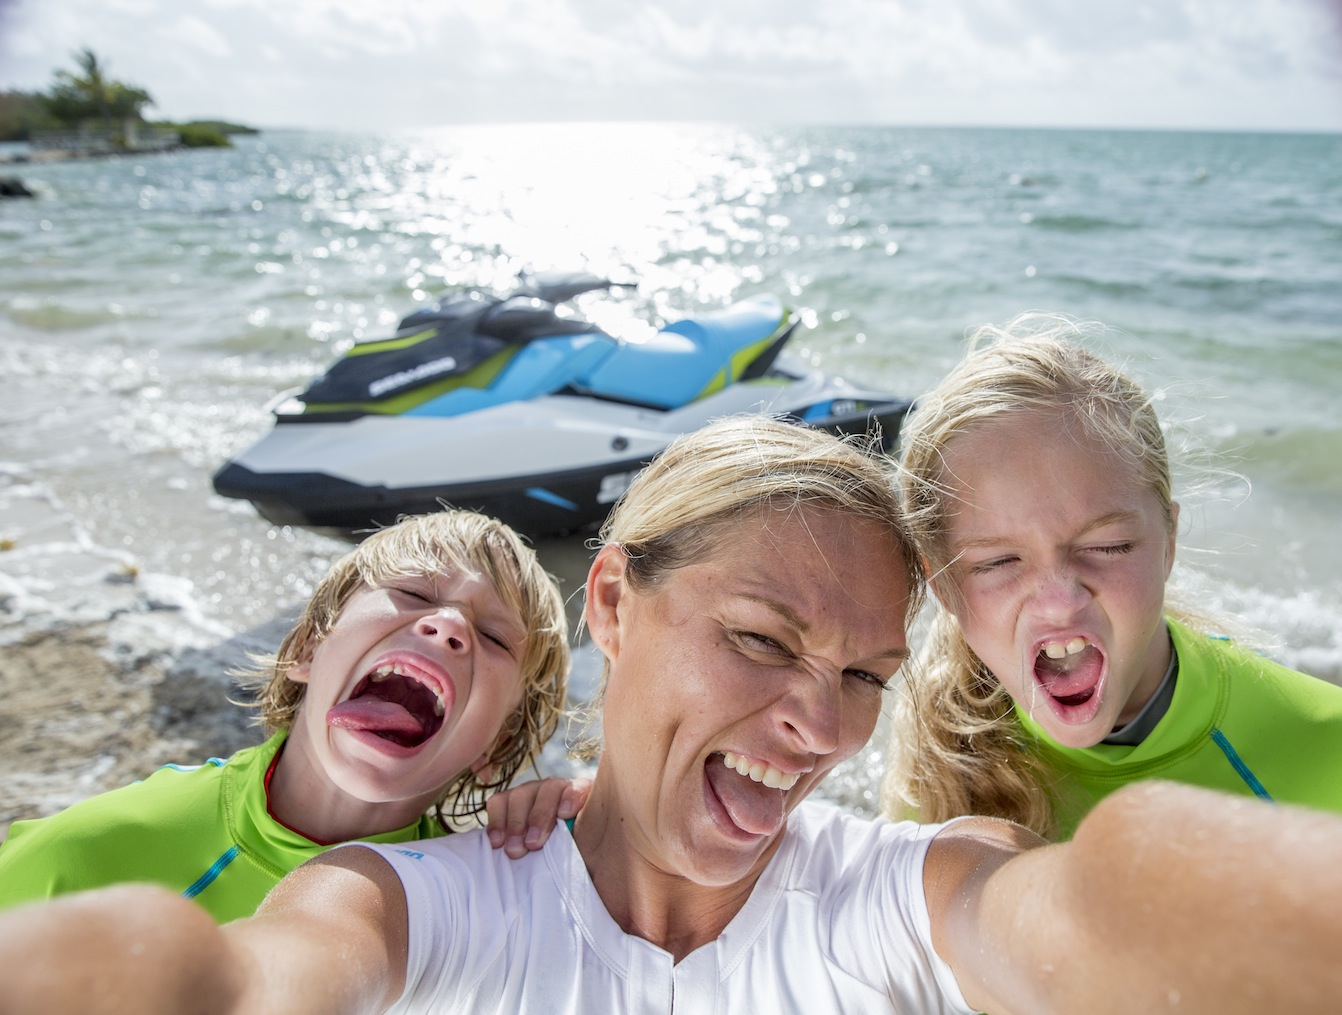 Sea Doo Watercraft For Sale – Sea Doo Buying Tips